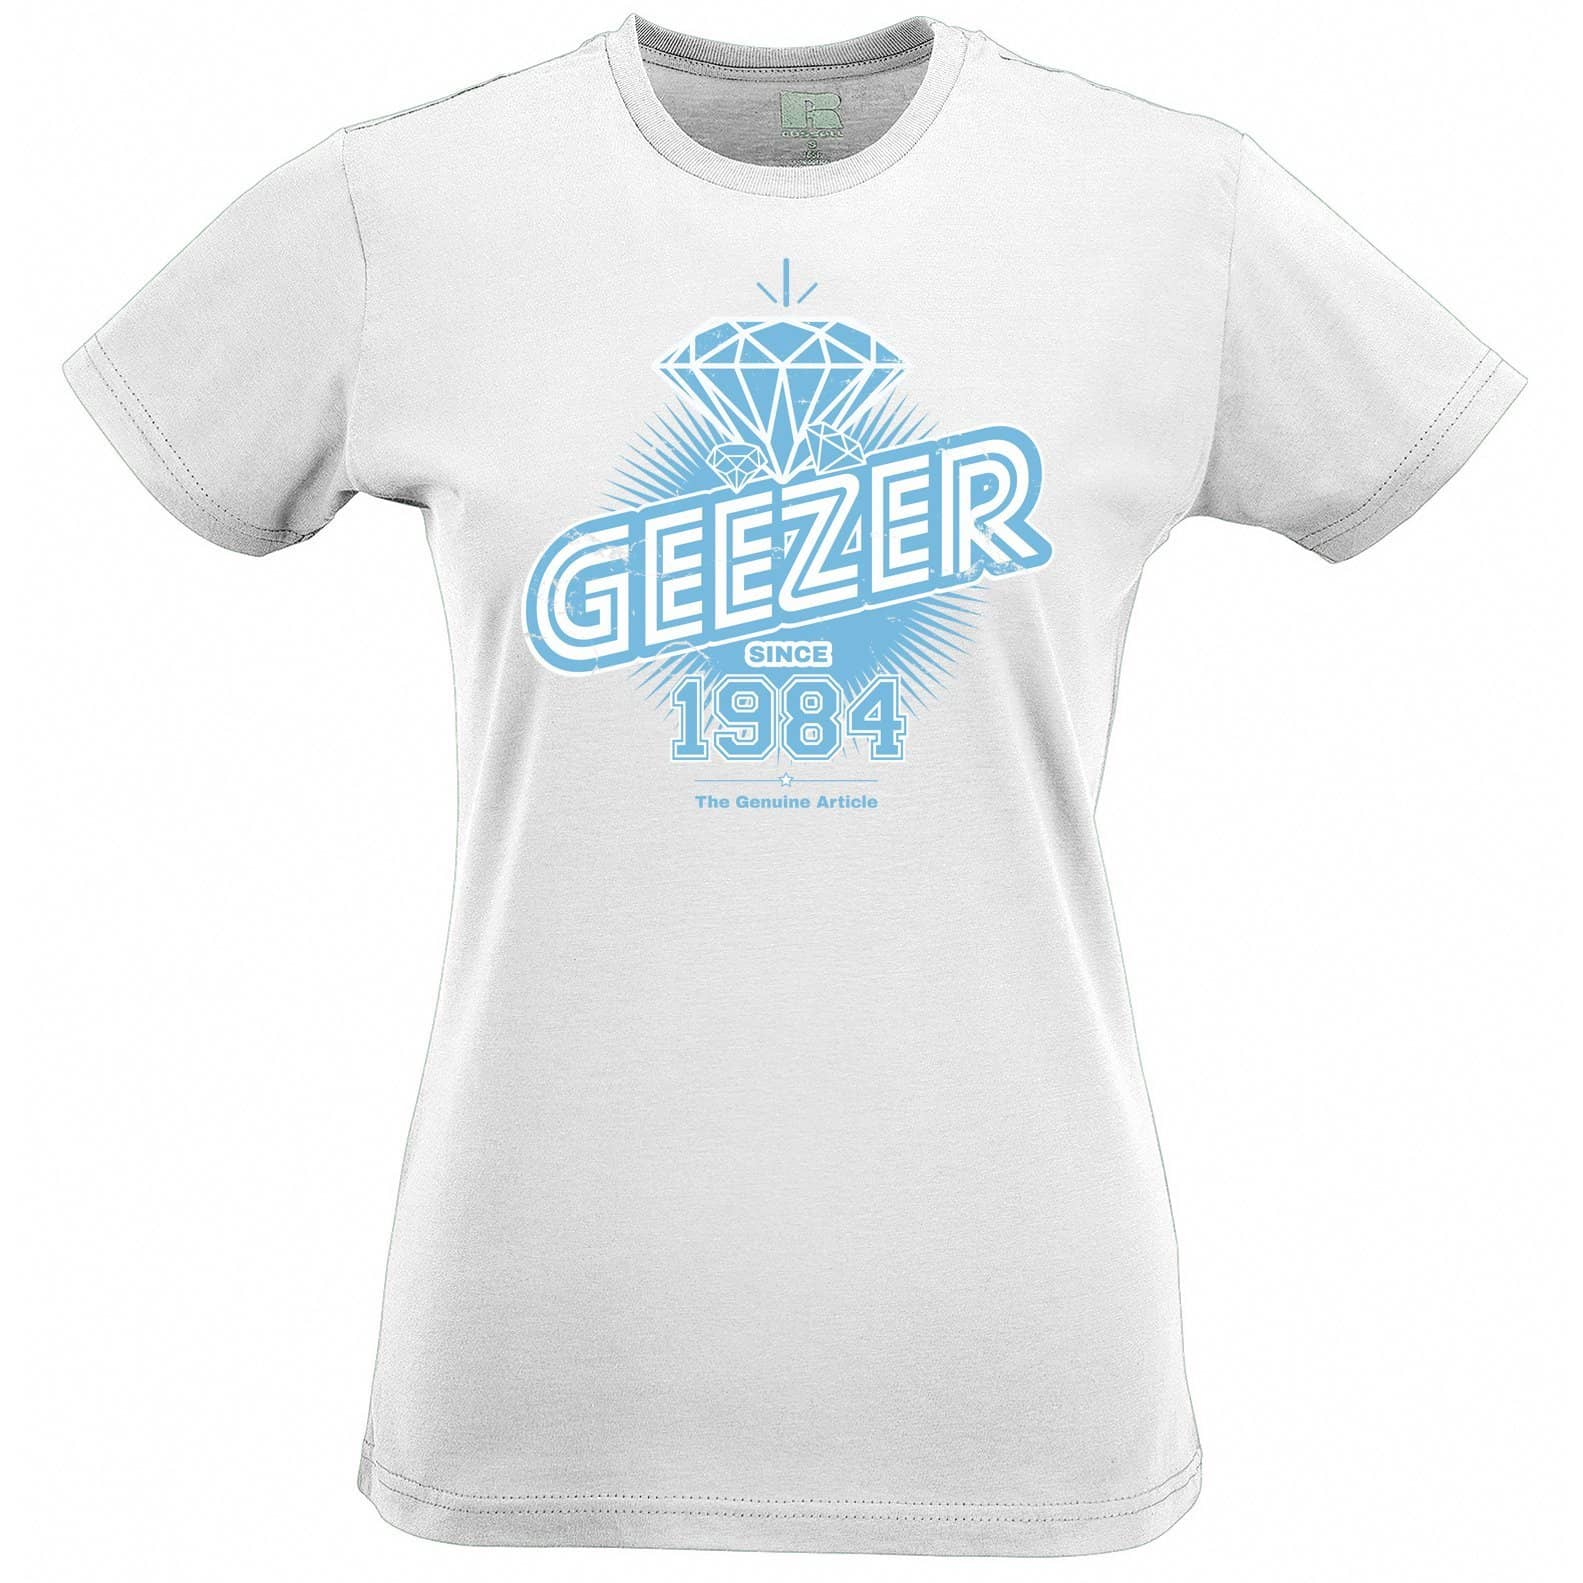 34th Birthday Womens Tee Diamond Geezer Since 1984